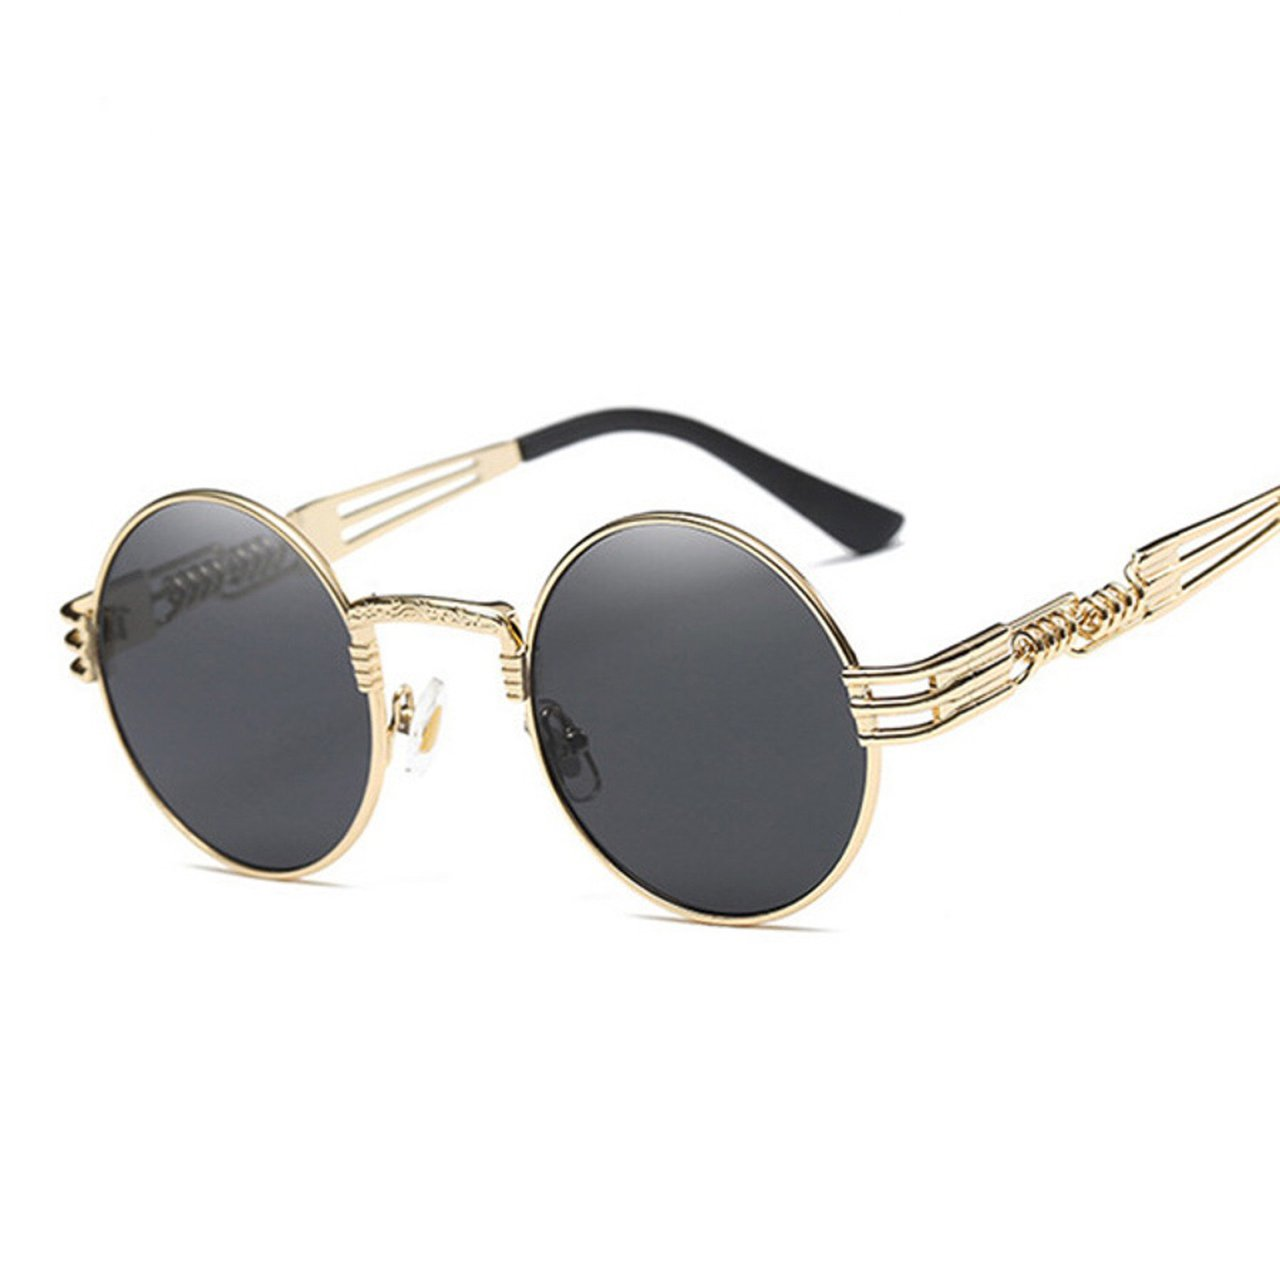 97673c3e68 Men s Round Shape Gold And.  19.99. Dale Street Gold Sunglasses Frame ...